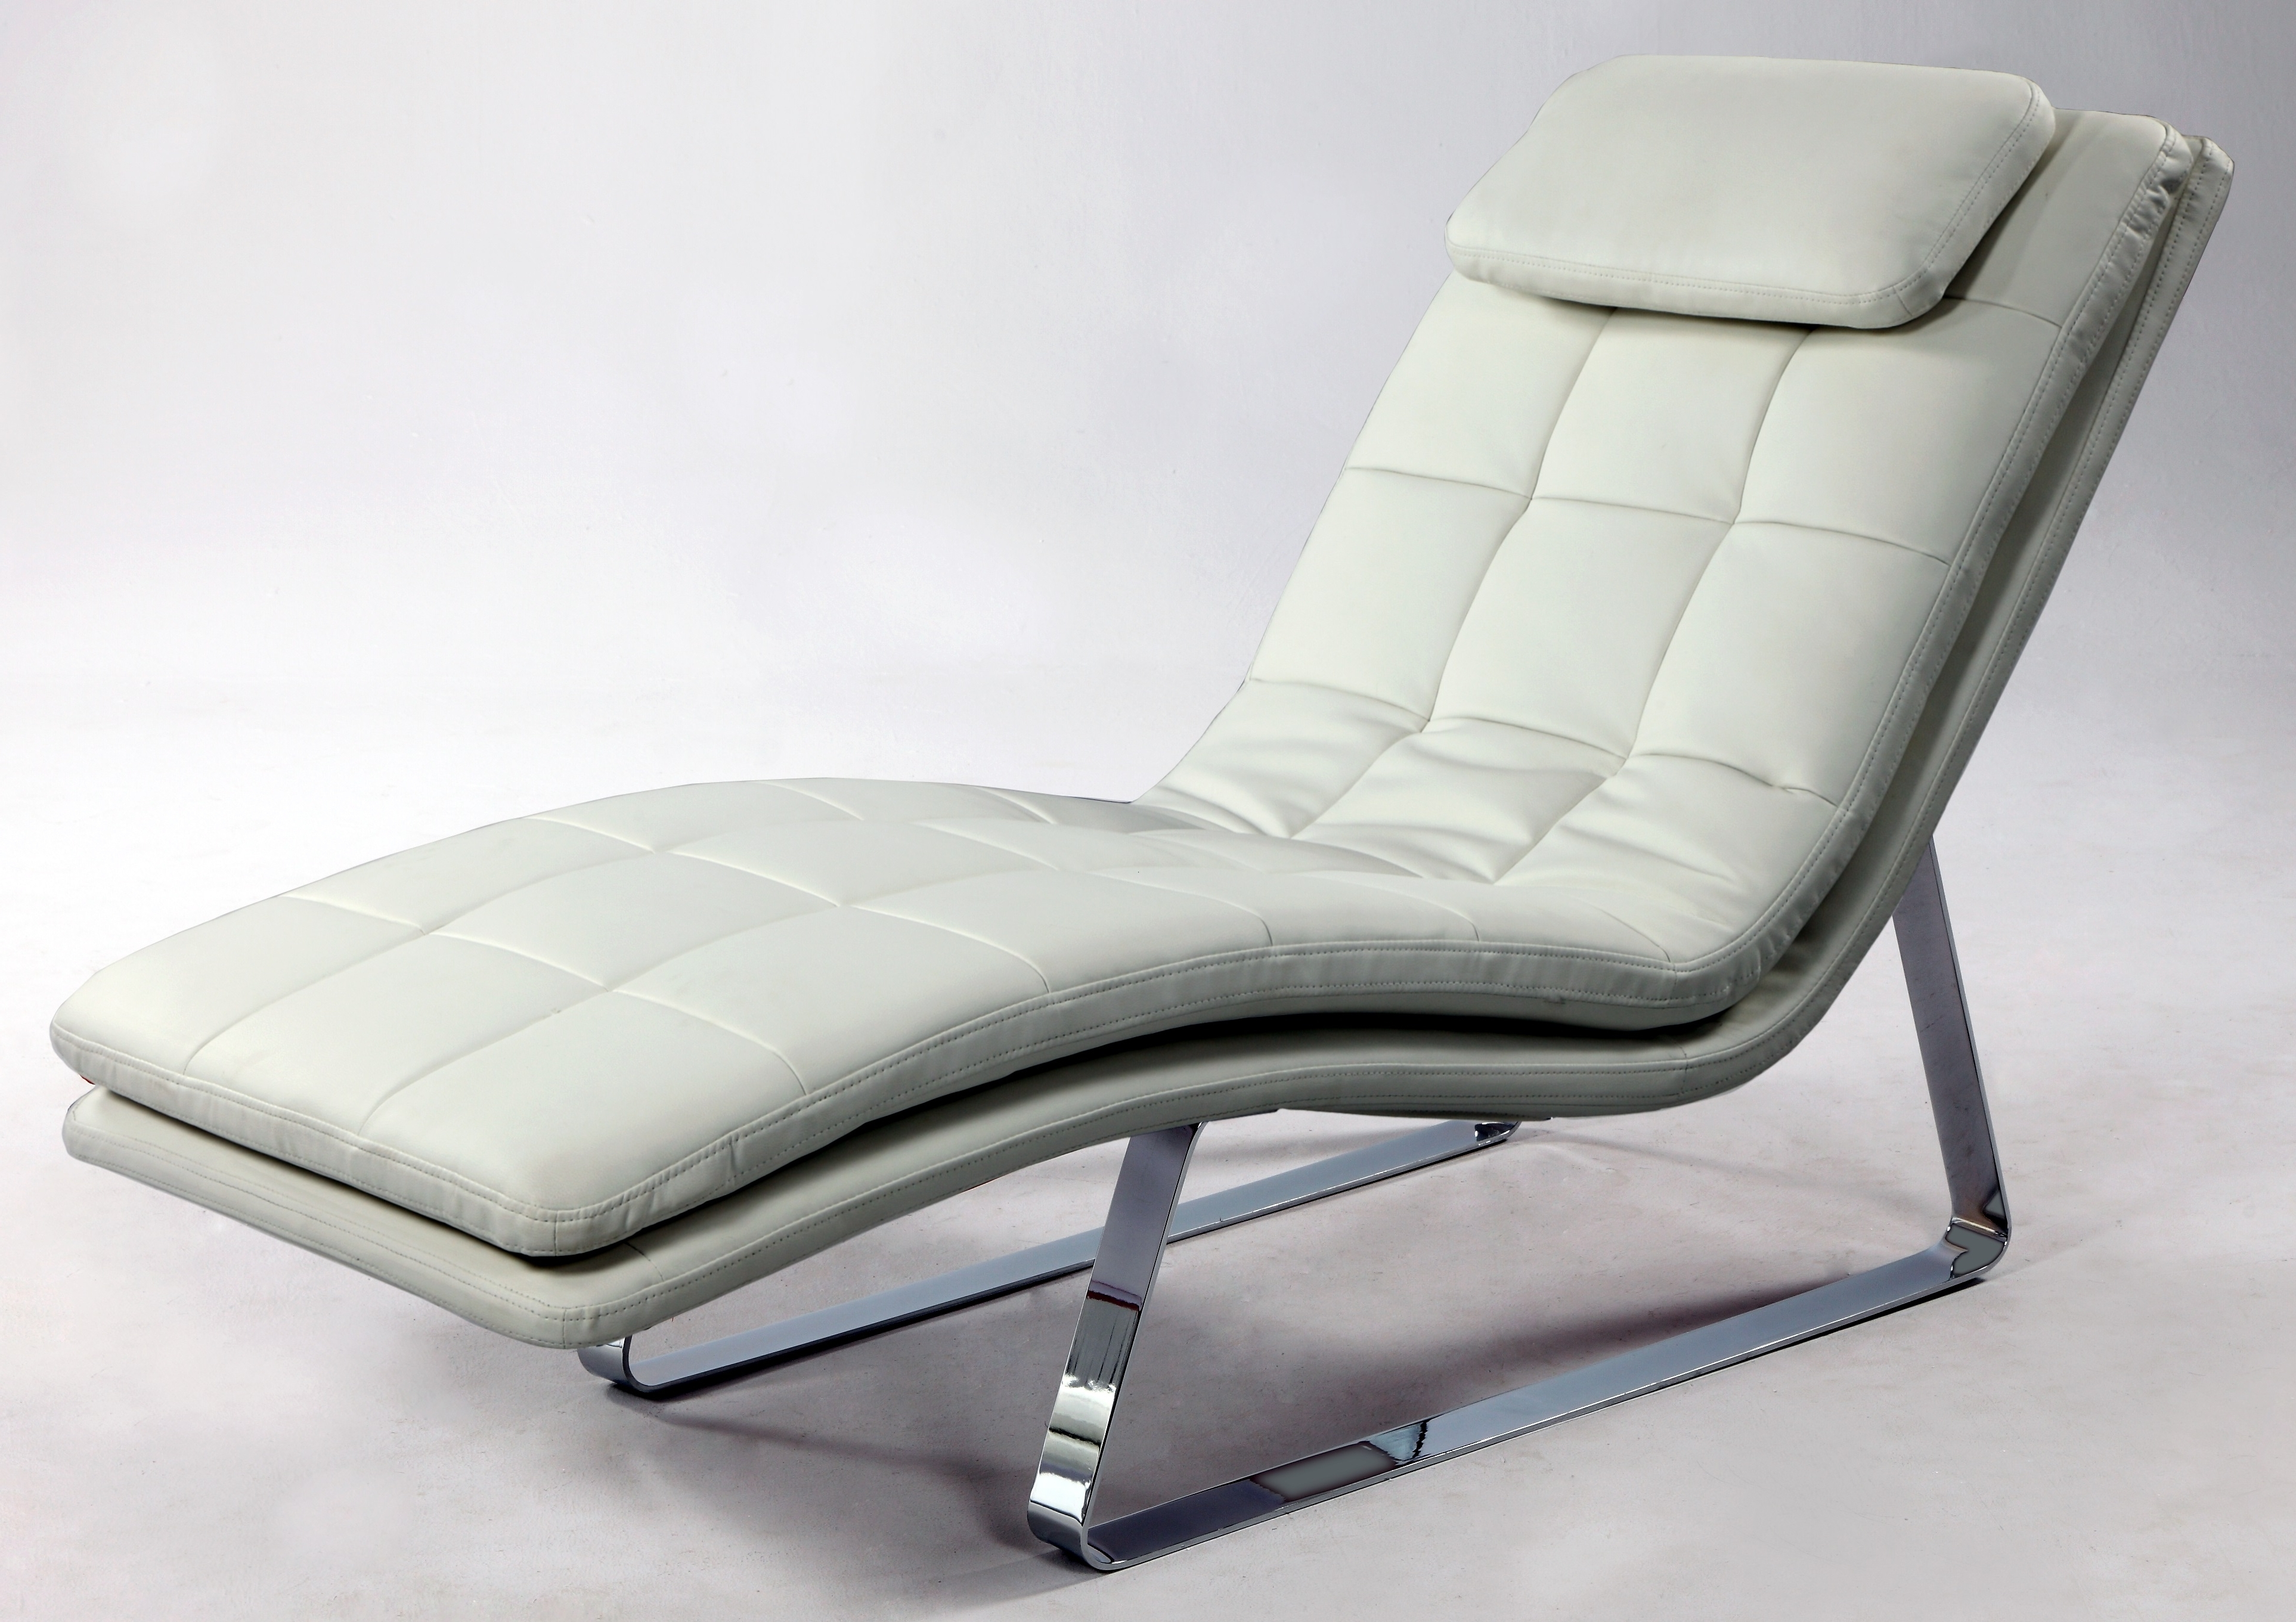 White Chaise Lounges Throughout Favorite Full Bonded Leather Tufted Chaise Lounge With Chrome Legs New York (View 14 of 15)